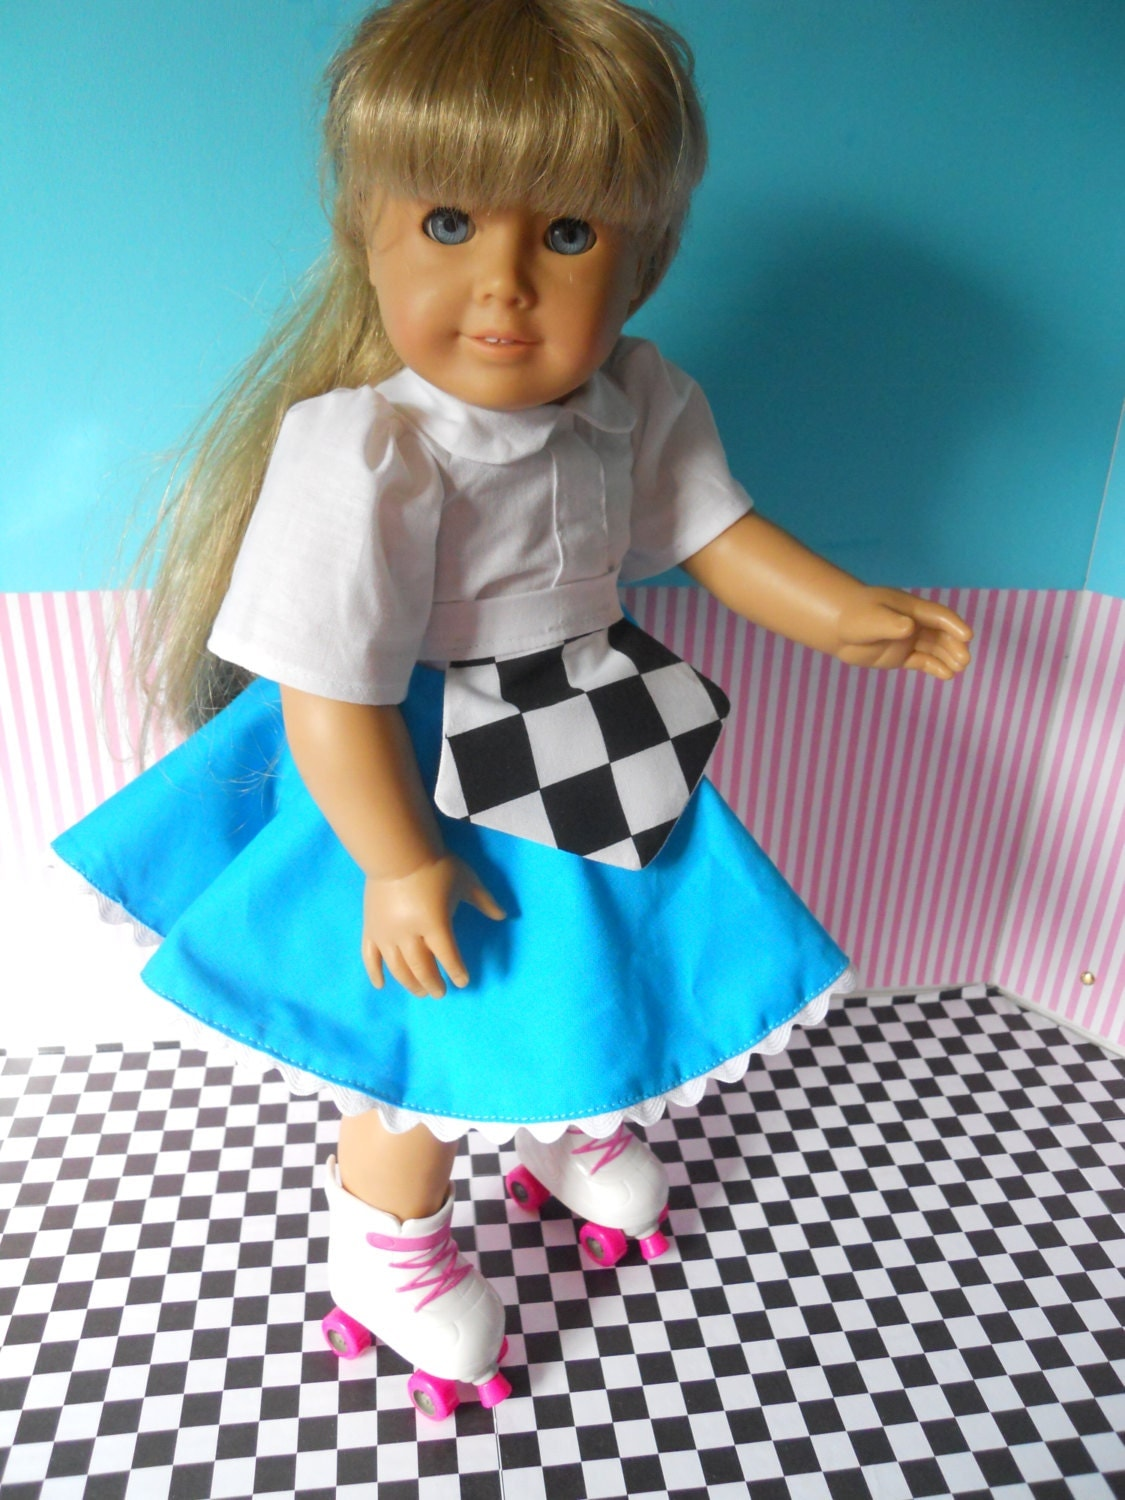 Retro 50s Roller Skating Outfit 18 Inch Doll Clothing